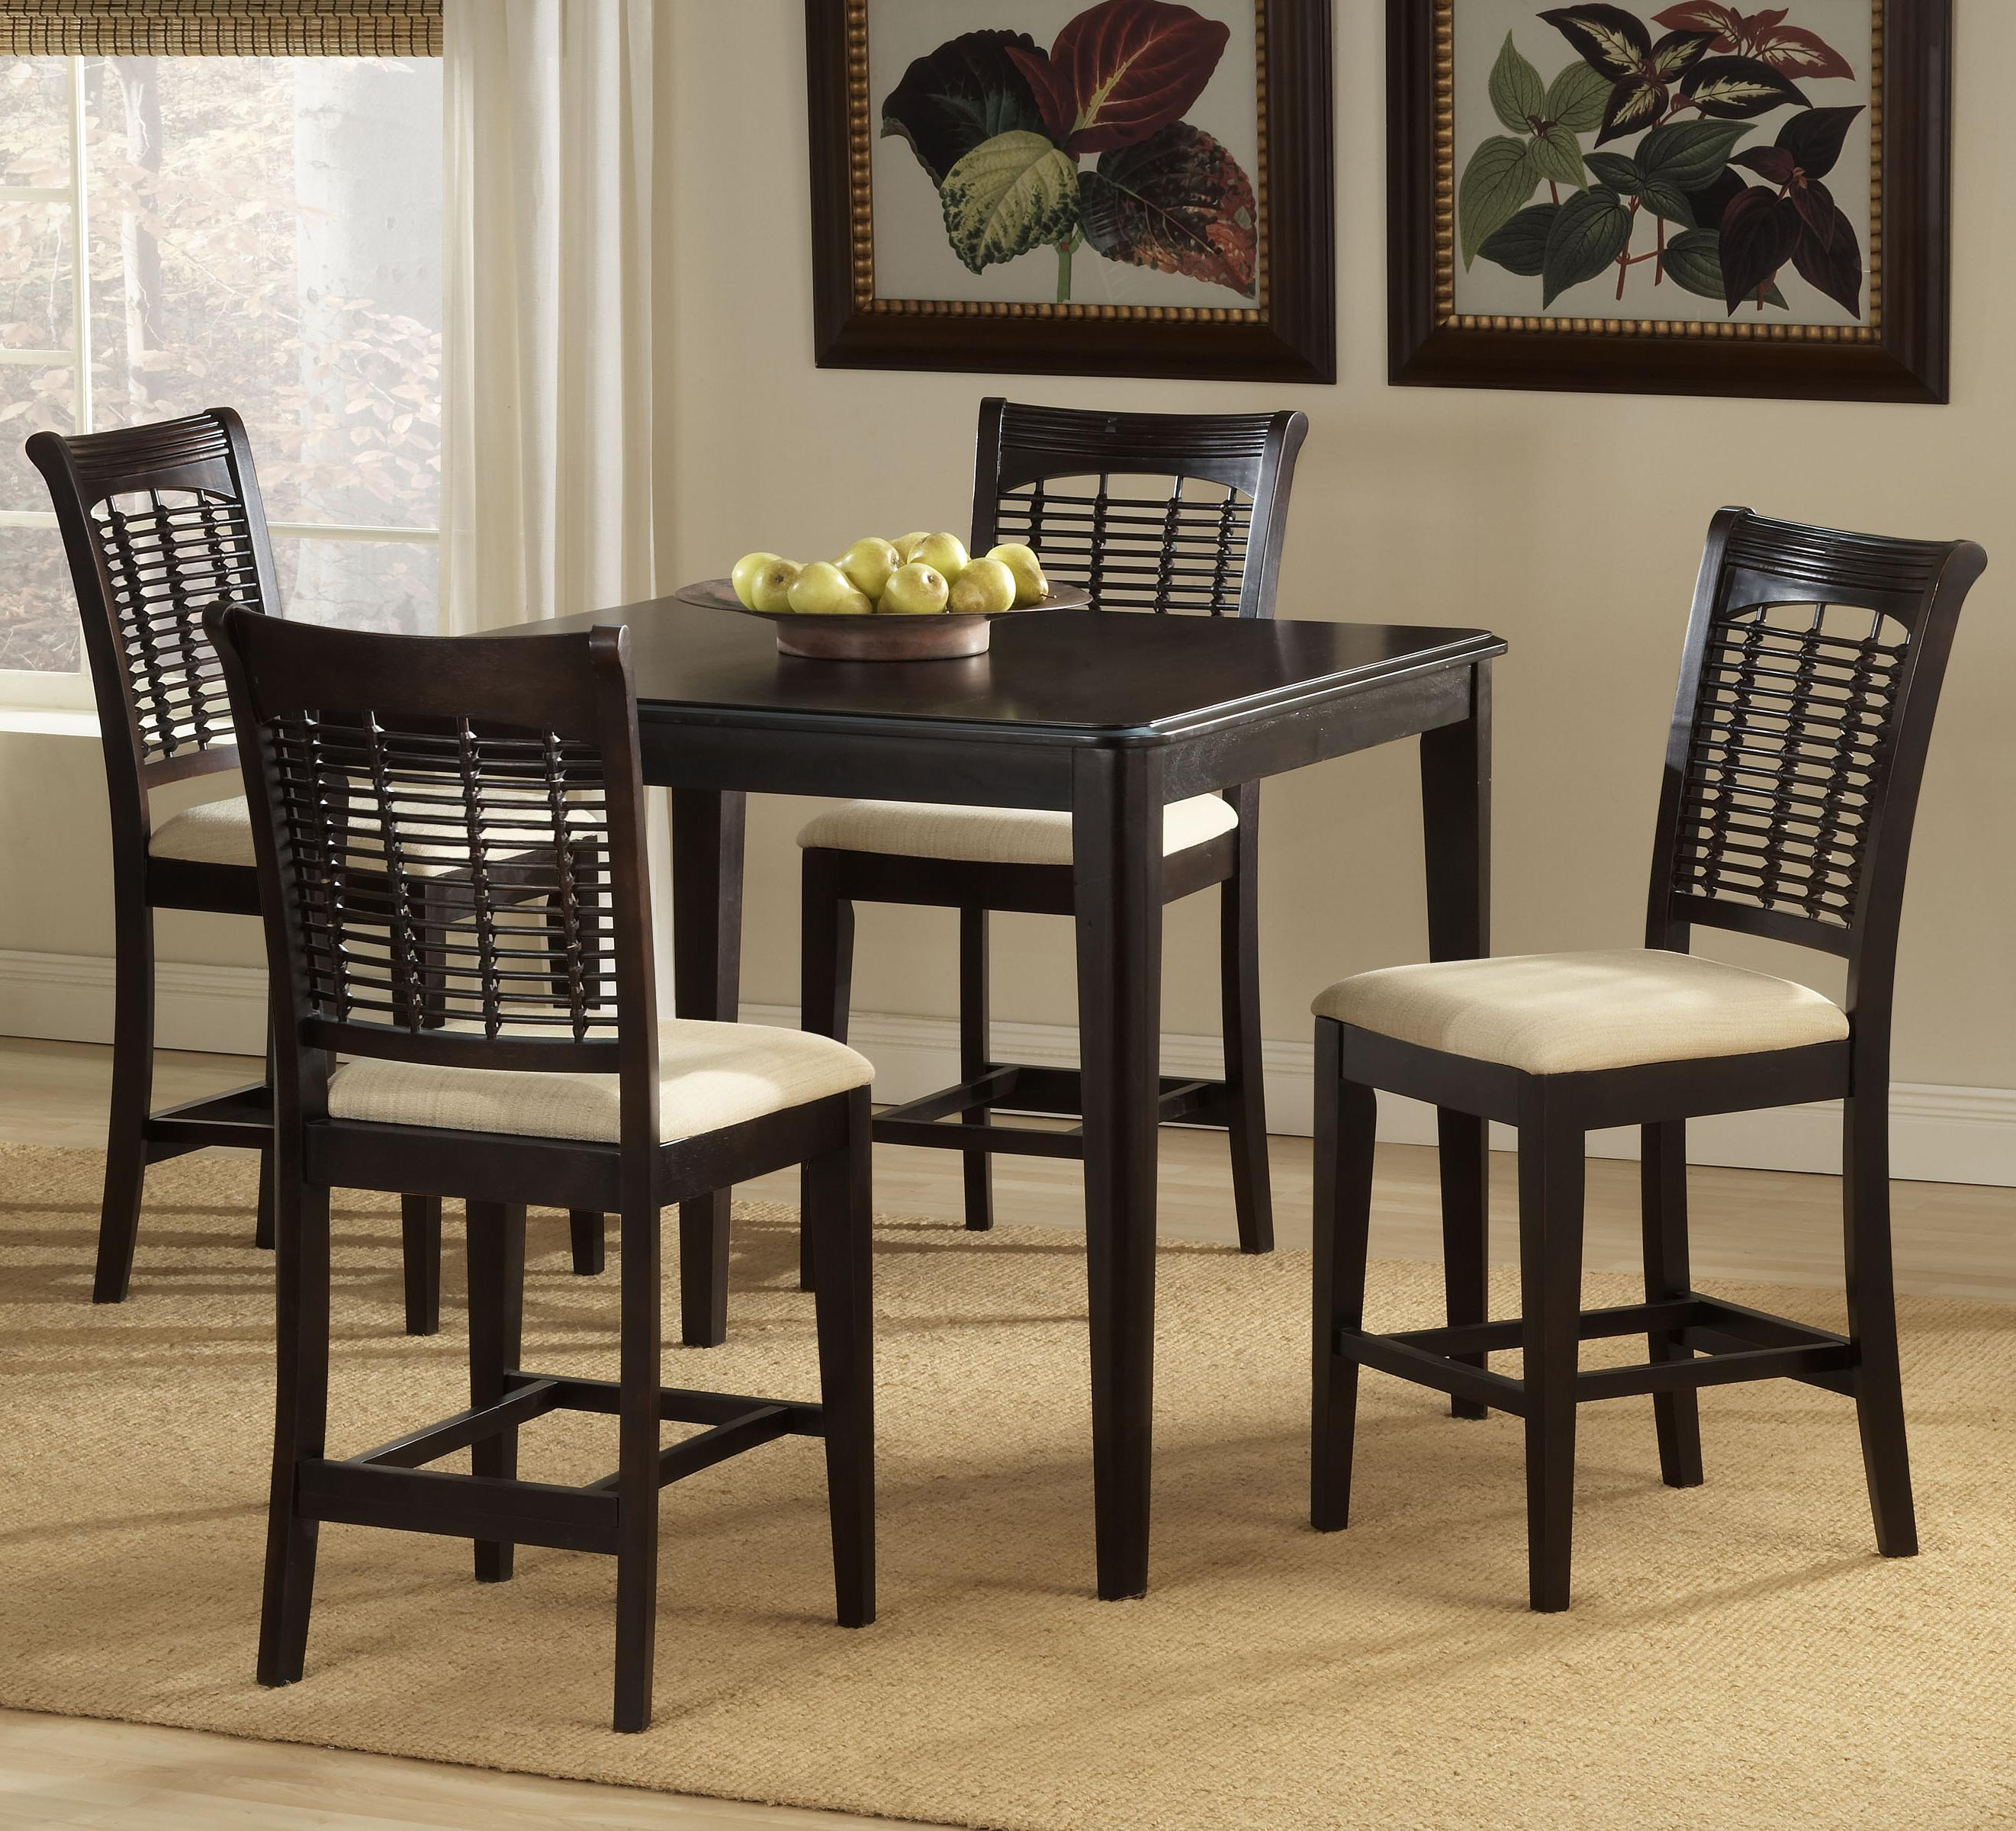 Hillsdale Bayberry and Glenmary Five Piece Counter Height Dining Set - Item Number: 4783DTBSG